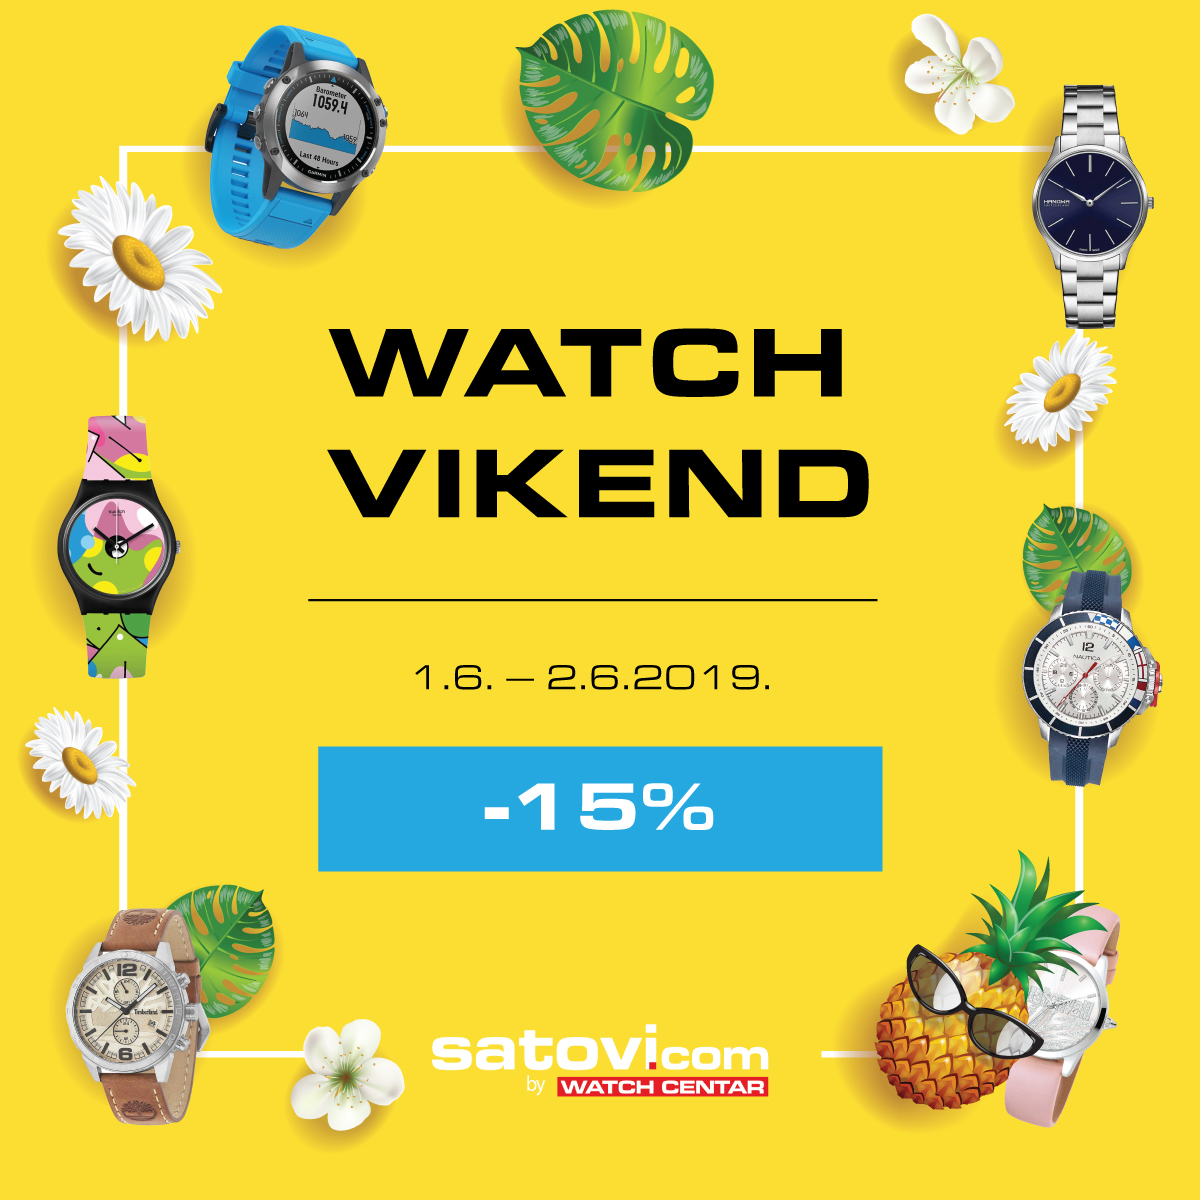 FB_watch-vikend